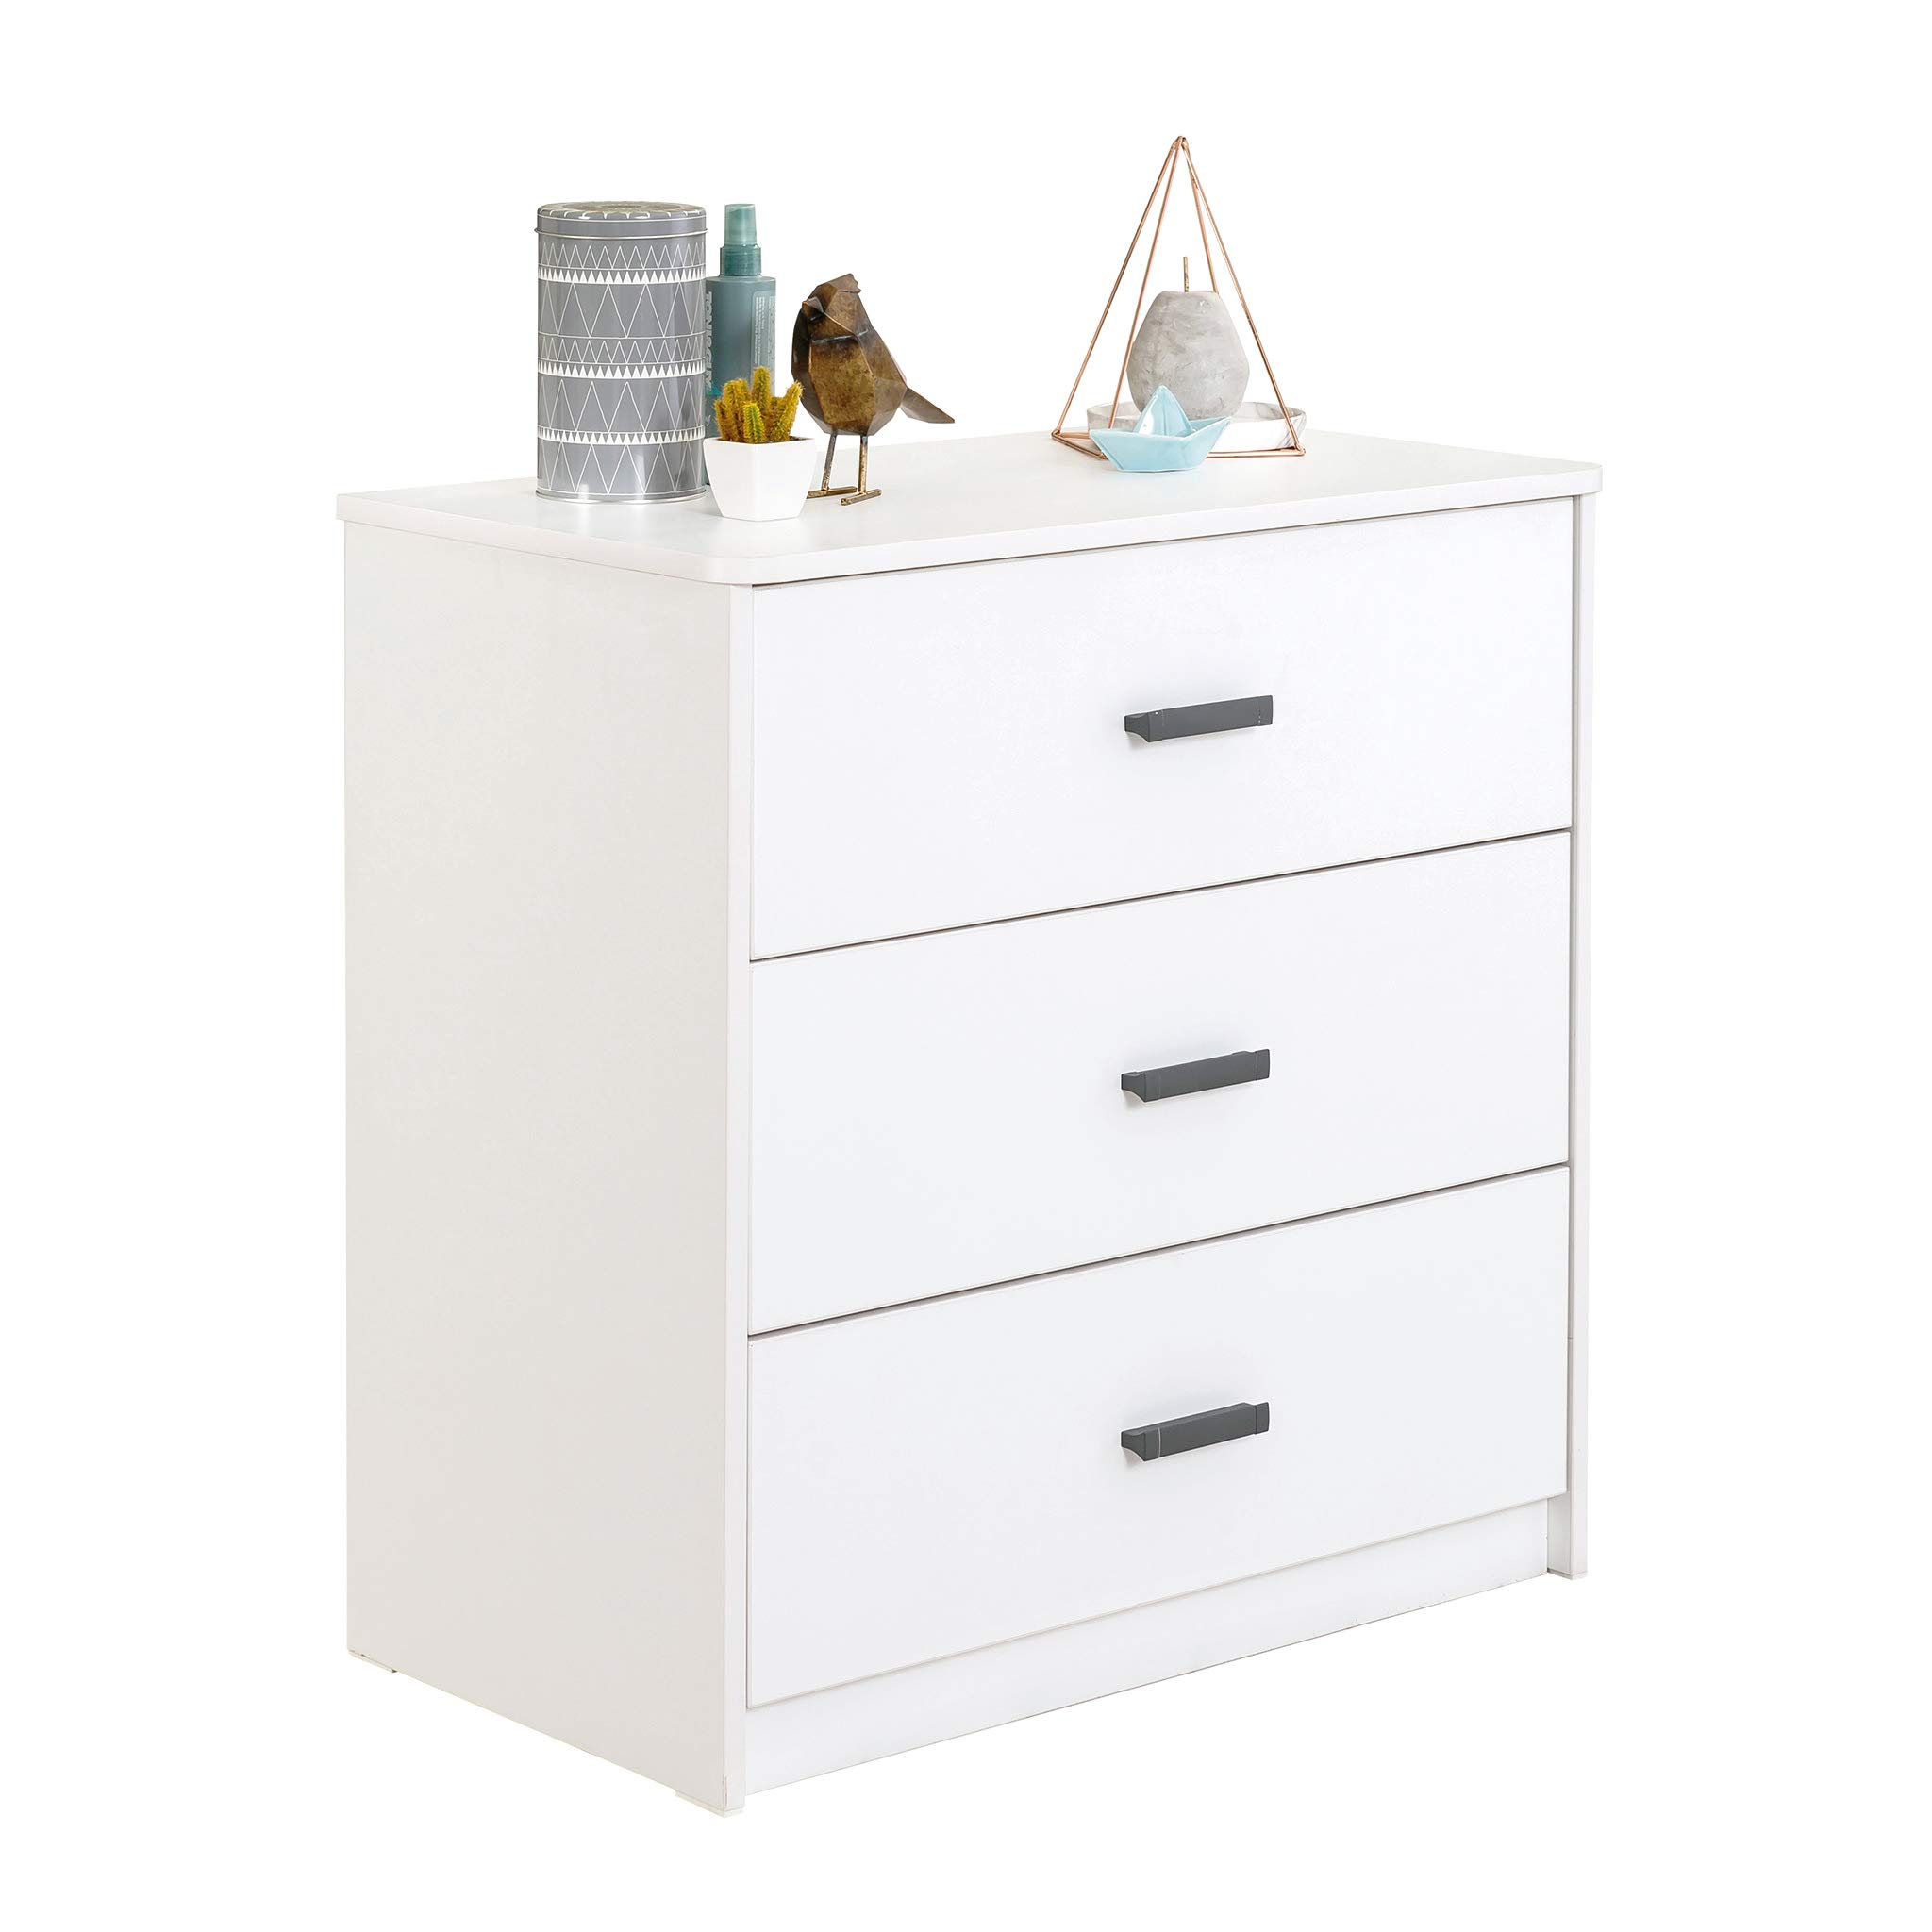 Cilek White Collection 3 Drawer Chest, Dresser for for Kids and Teens, Unisex,